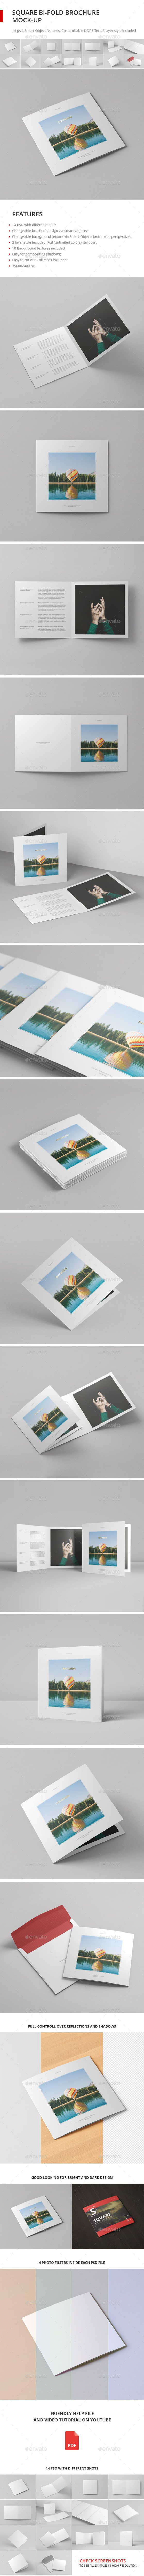 Square Greeting Card / Bi-Fold Brochure PSD Mock-Up  Template • Only available here ➝ http://graphicriver.net/item/square-greeting-card-bifold-brochure-mockup/16770623?ref=pxcr